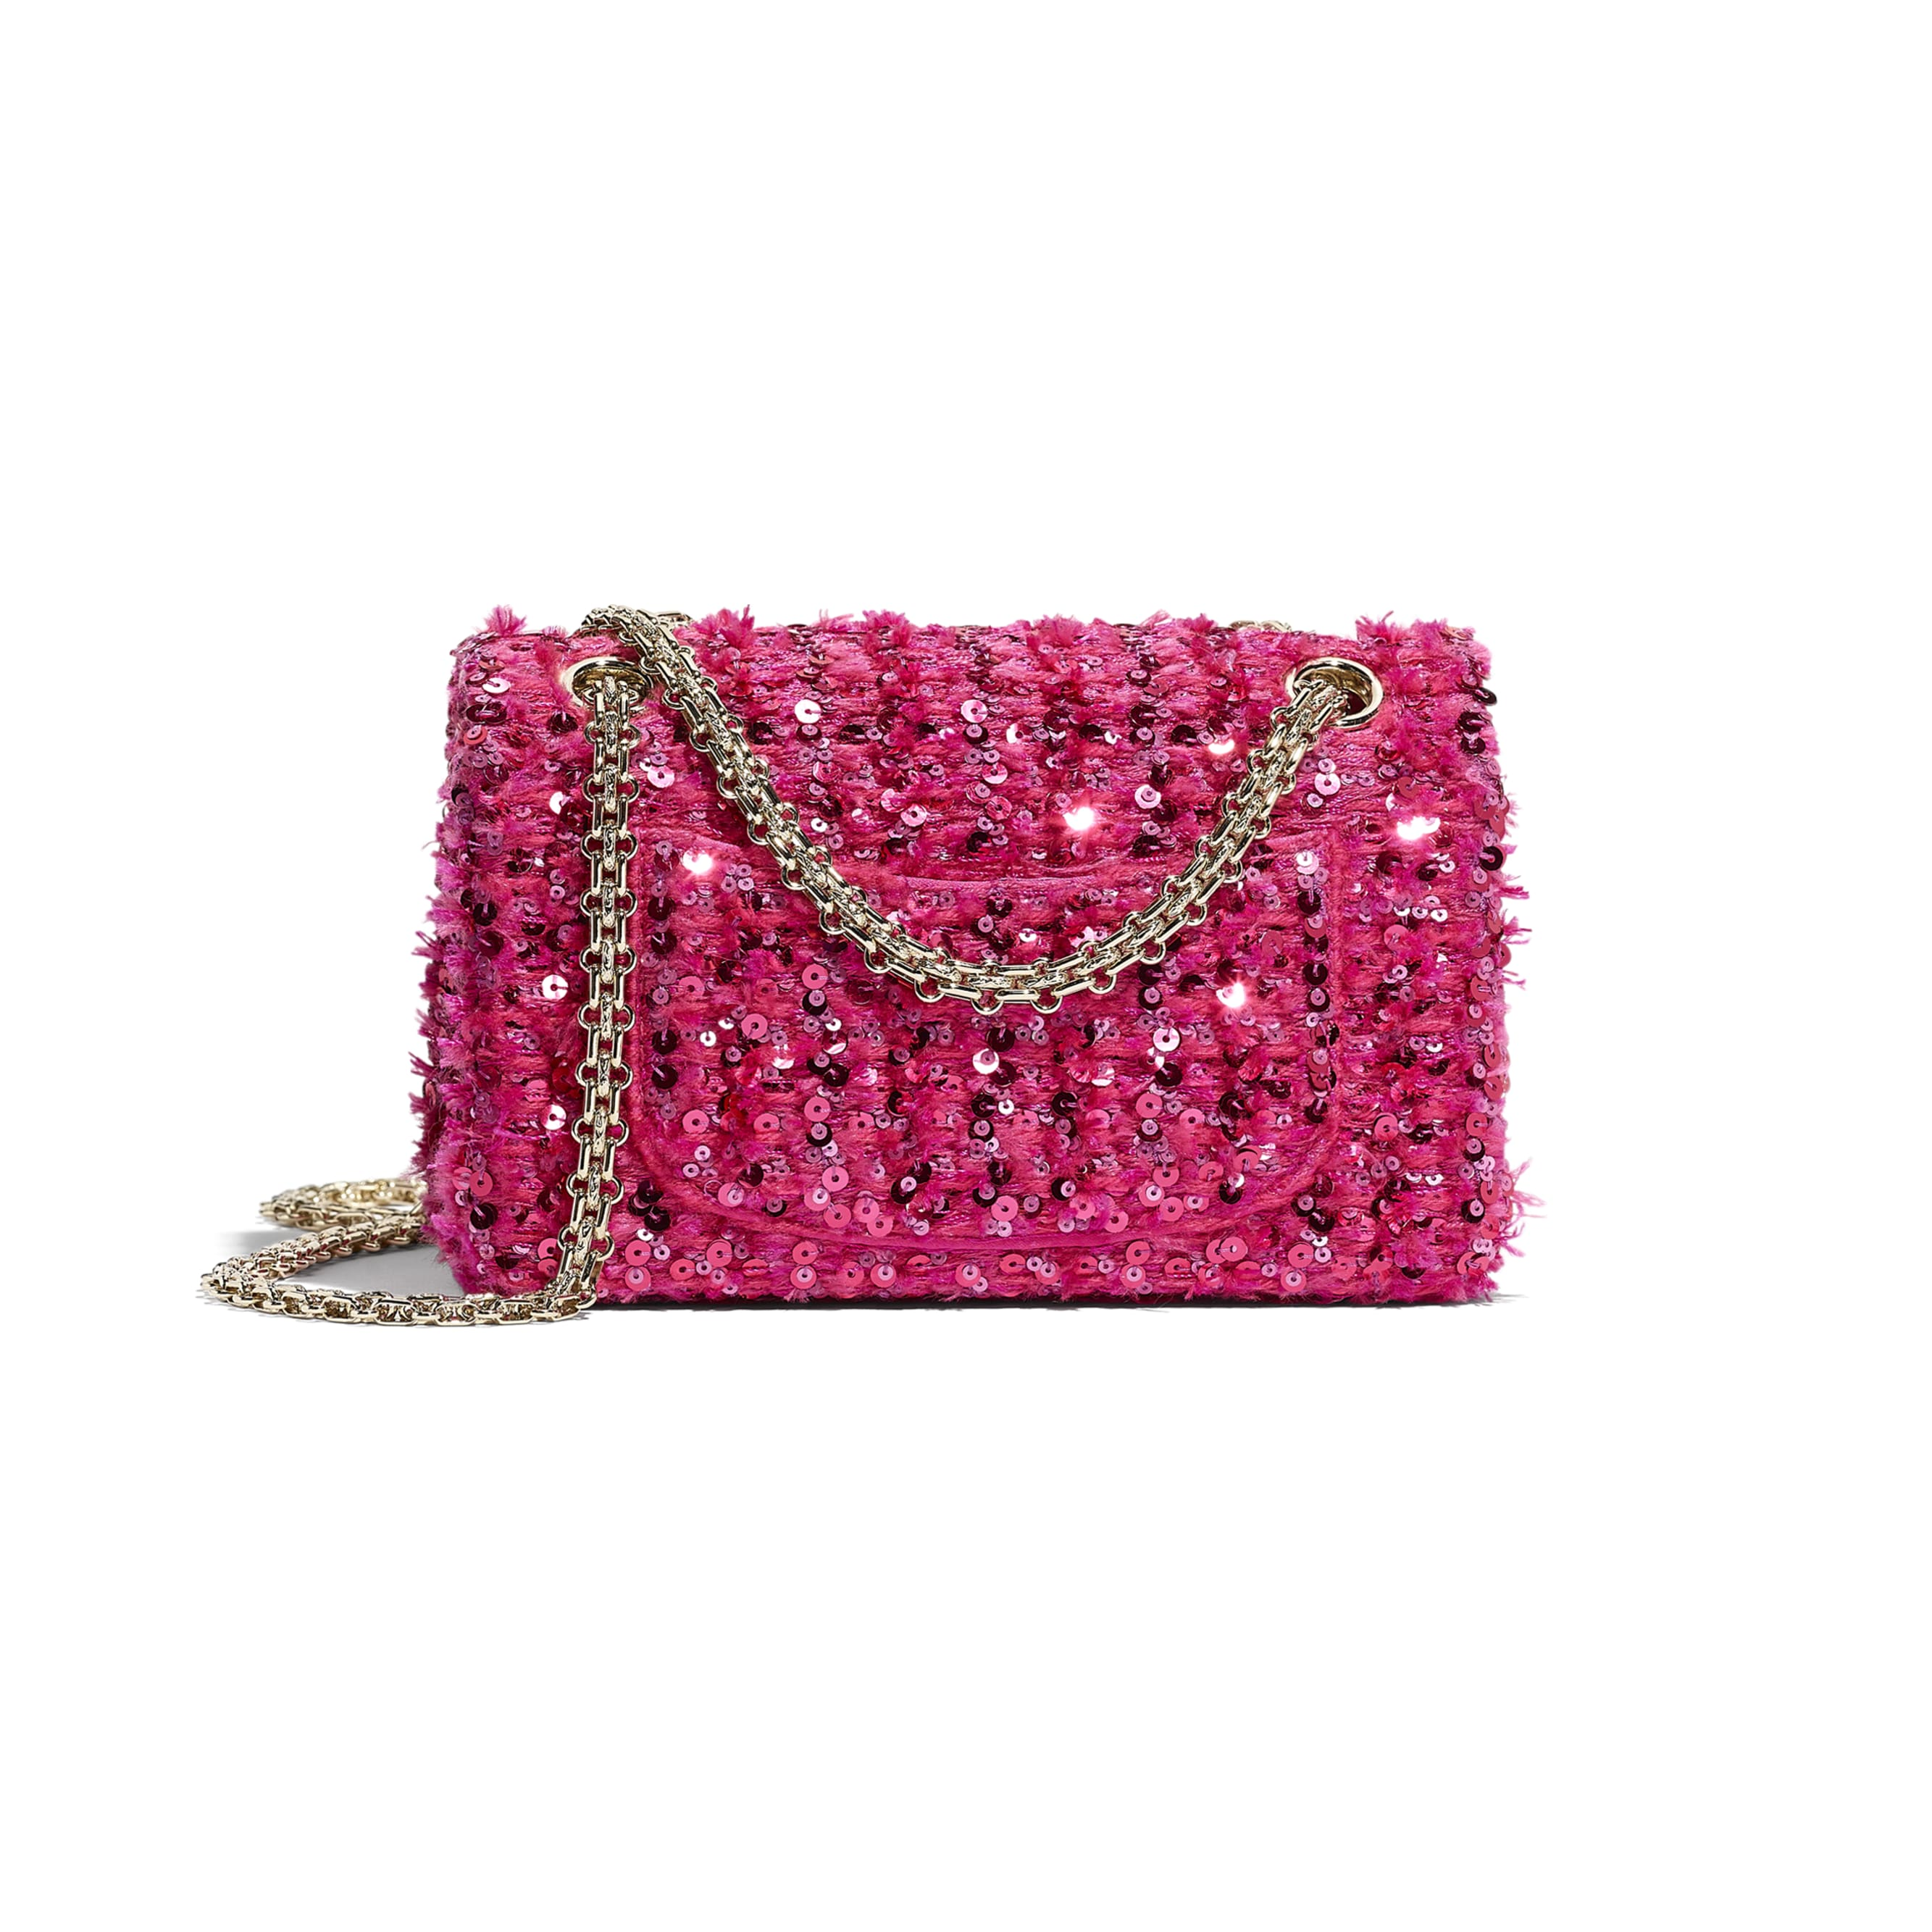 Mini 2.55 Handbag - Pink - Sequins & Gold-Tone Metal - CHANEL - Alternative view - see standard sized version